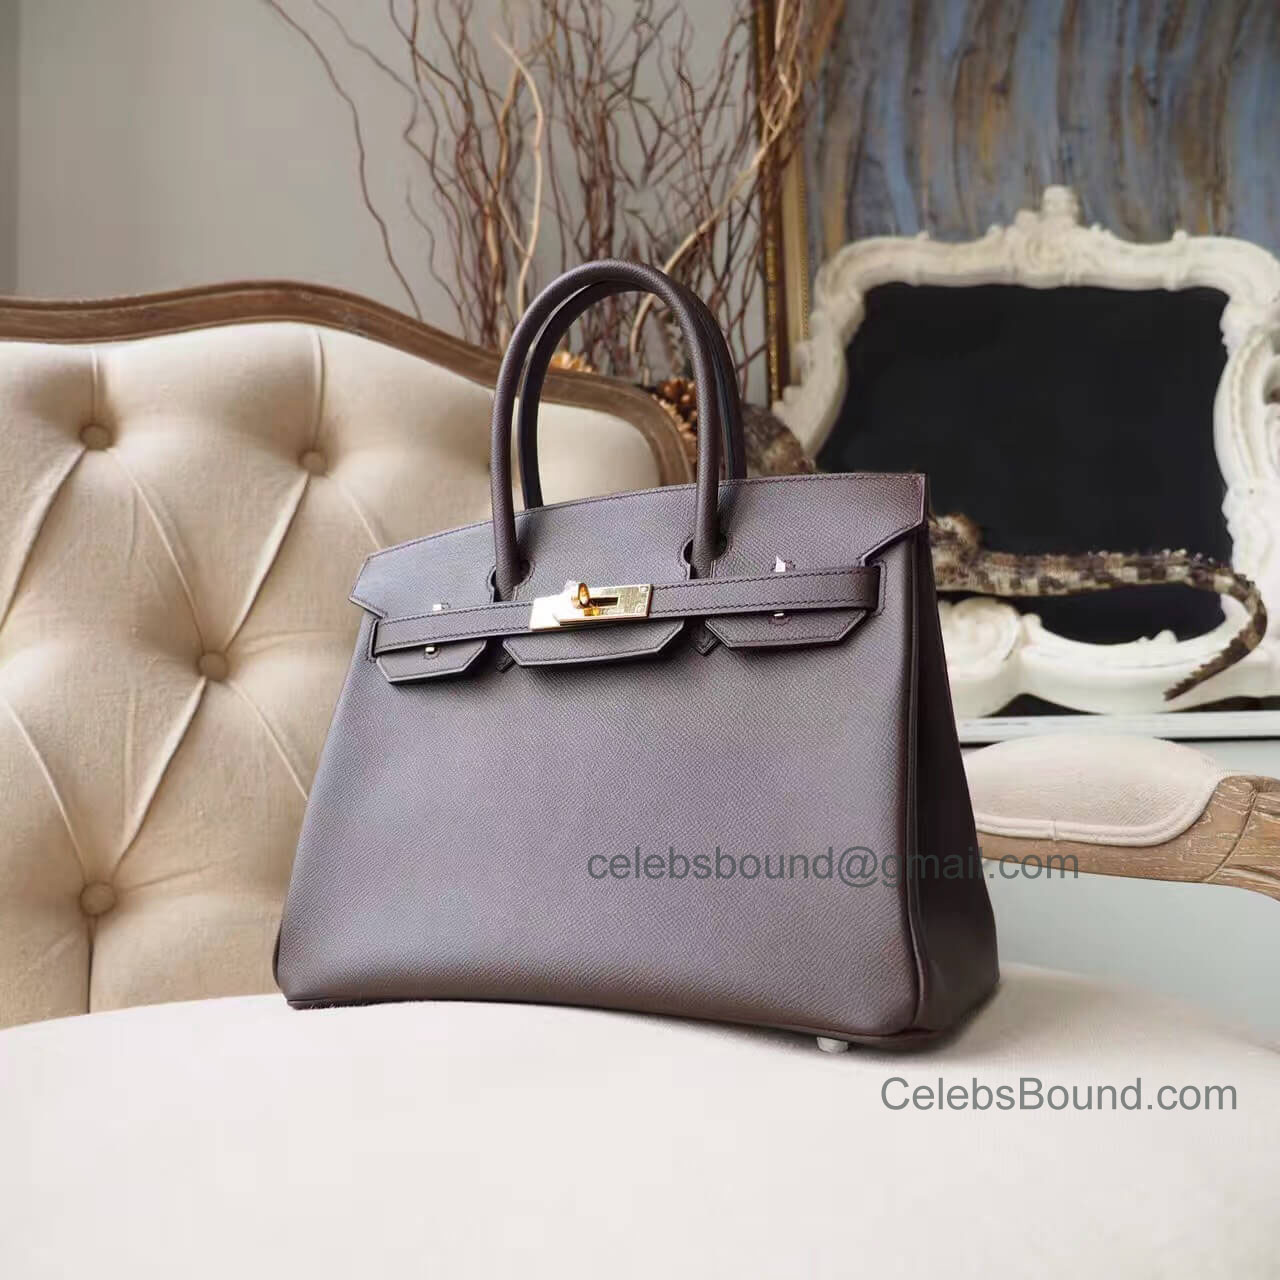 Hermes Birkin 30 Handbag in ck47 Chocolate Epsom GHW